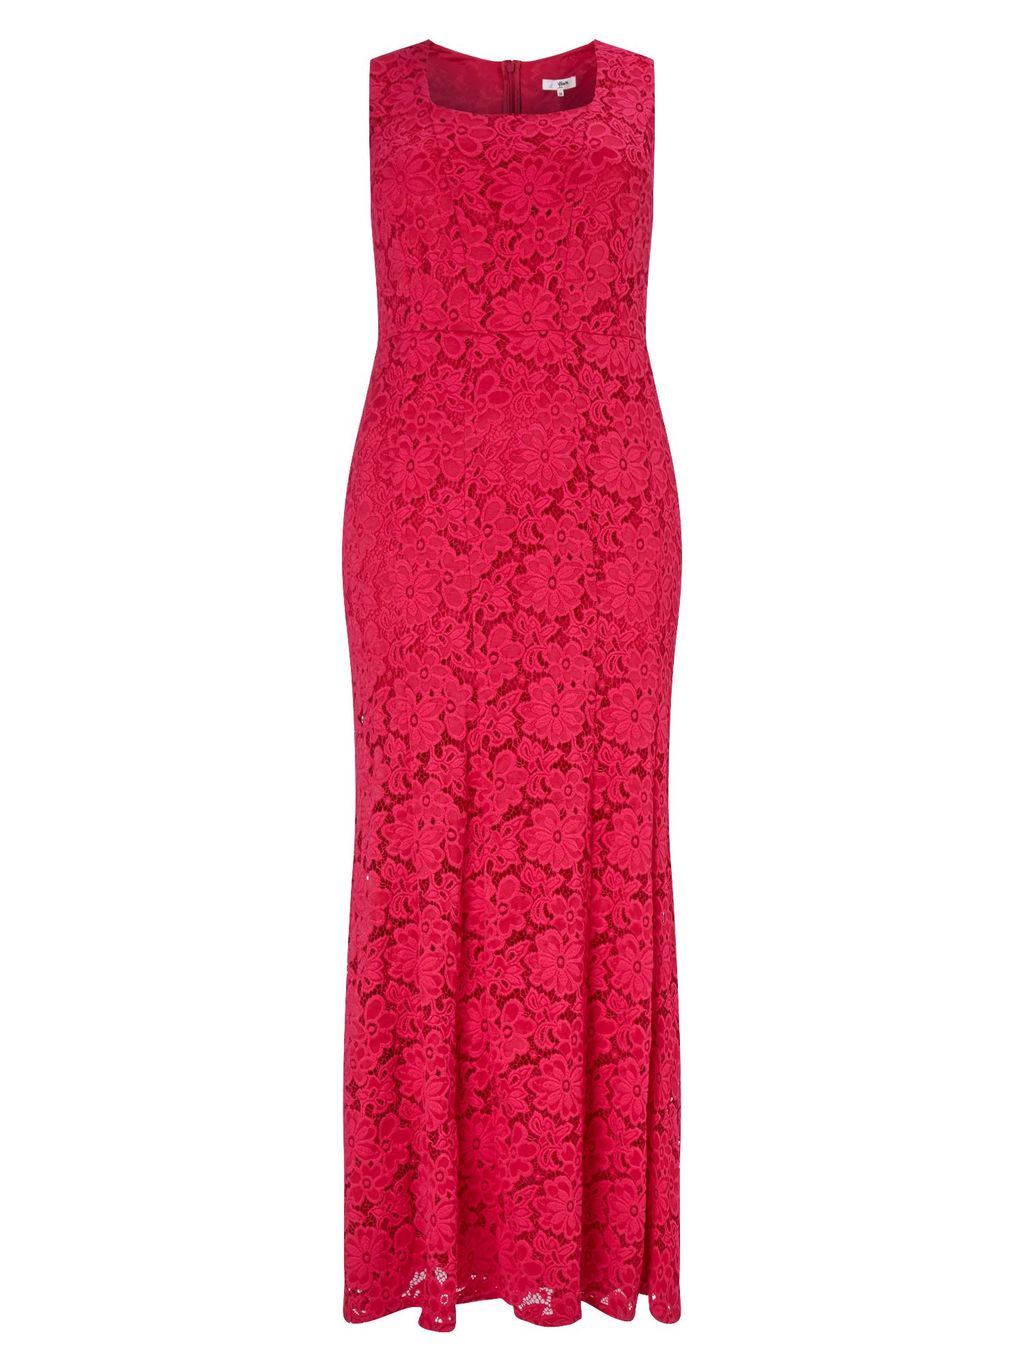 Christine Maxi Dress, Pink - neckline: high square neck; sleeve style: sleeveless; style: maxi dress; length: ankle length; predominant colour: hot pink; occasions: evening, occasion; fit: body skimming; fibres: polyester/polyamide - 100%; sleeve length: sleeveless; texture group: lace; pattern type: fabric; pattern size: standard; pattern: patterned/print; season: s/s 2016; wardrobe: event